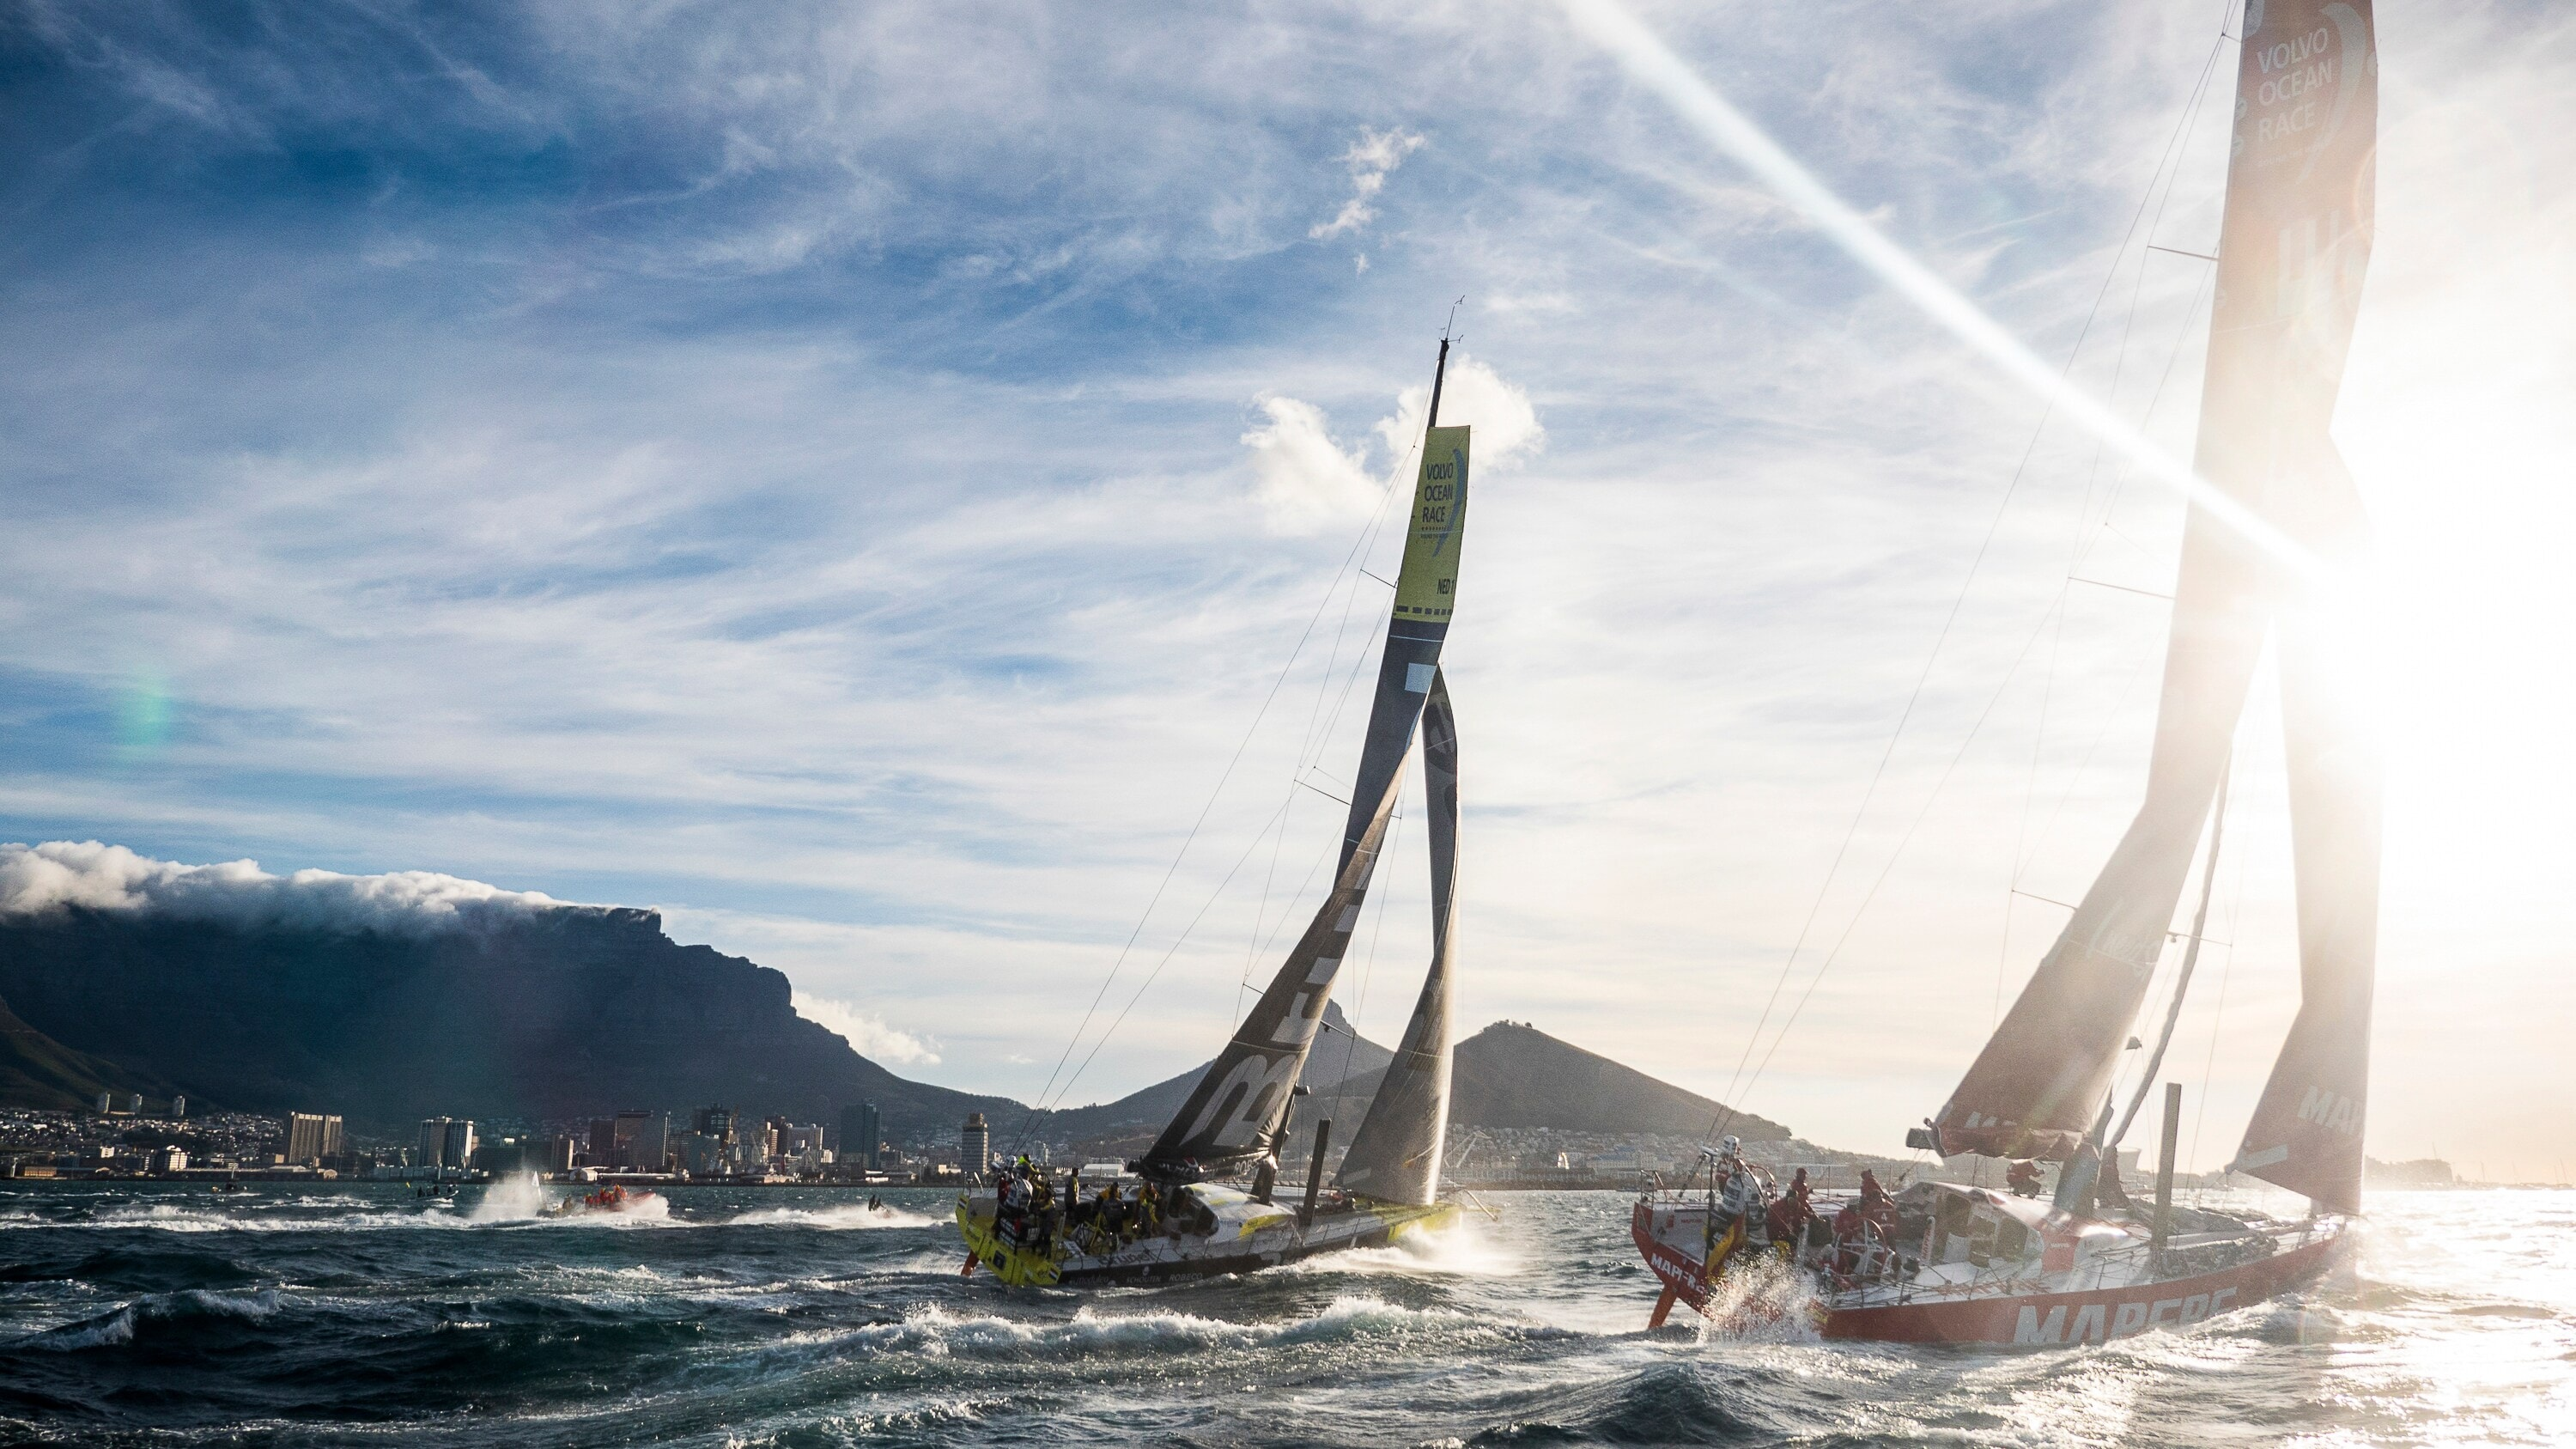 Two Volvo Ocean Race yachts sailing outside Cape Town